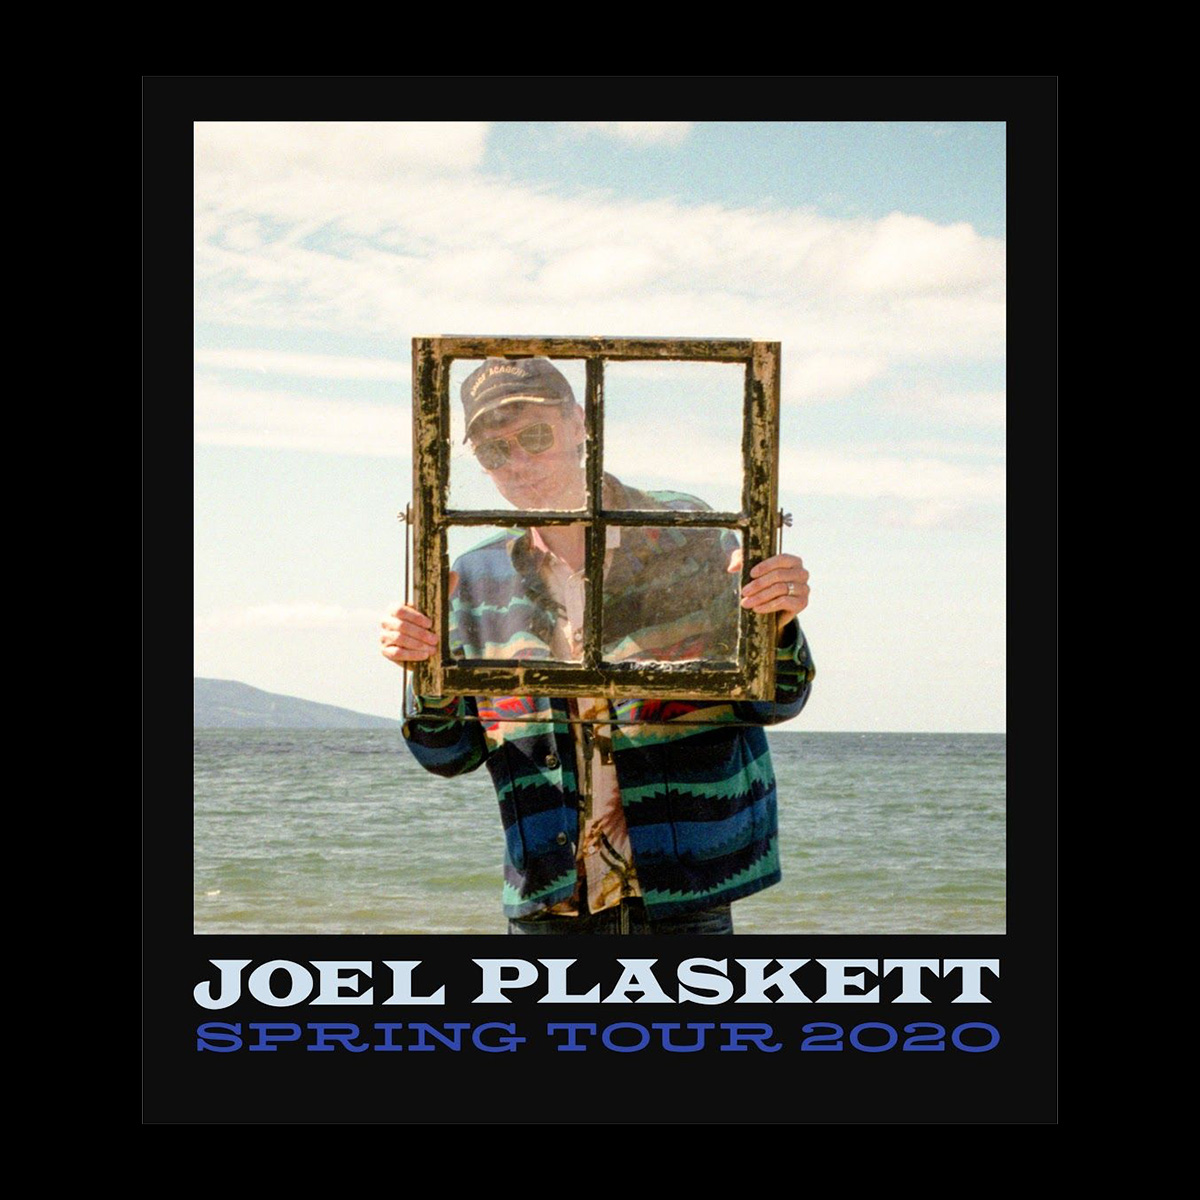 Joel Plaskett Announces 2020 Spring Tour New Music On The Way